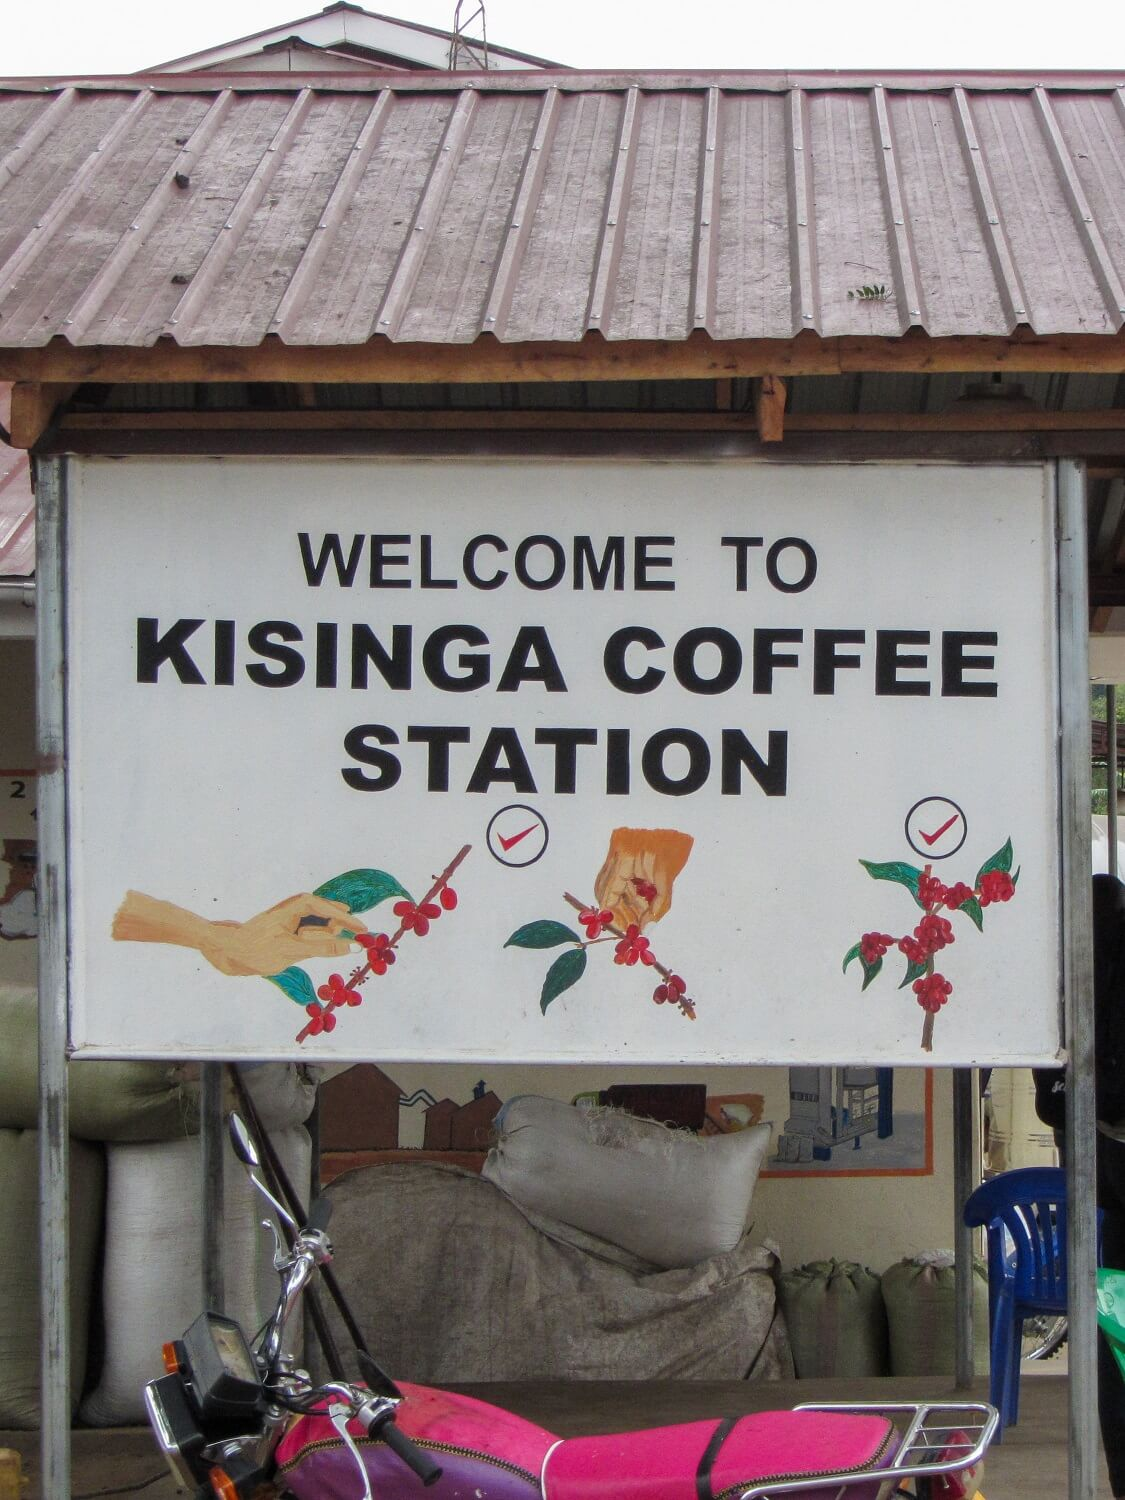 Uganda-Kisinga-Weihnachtskaffee-washing-Station